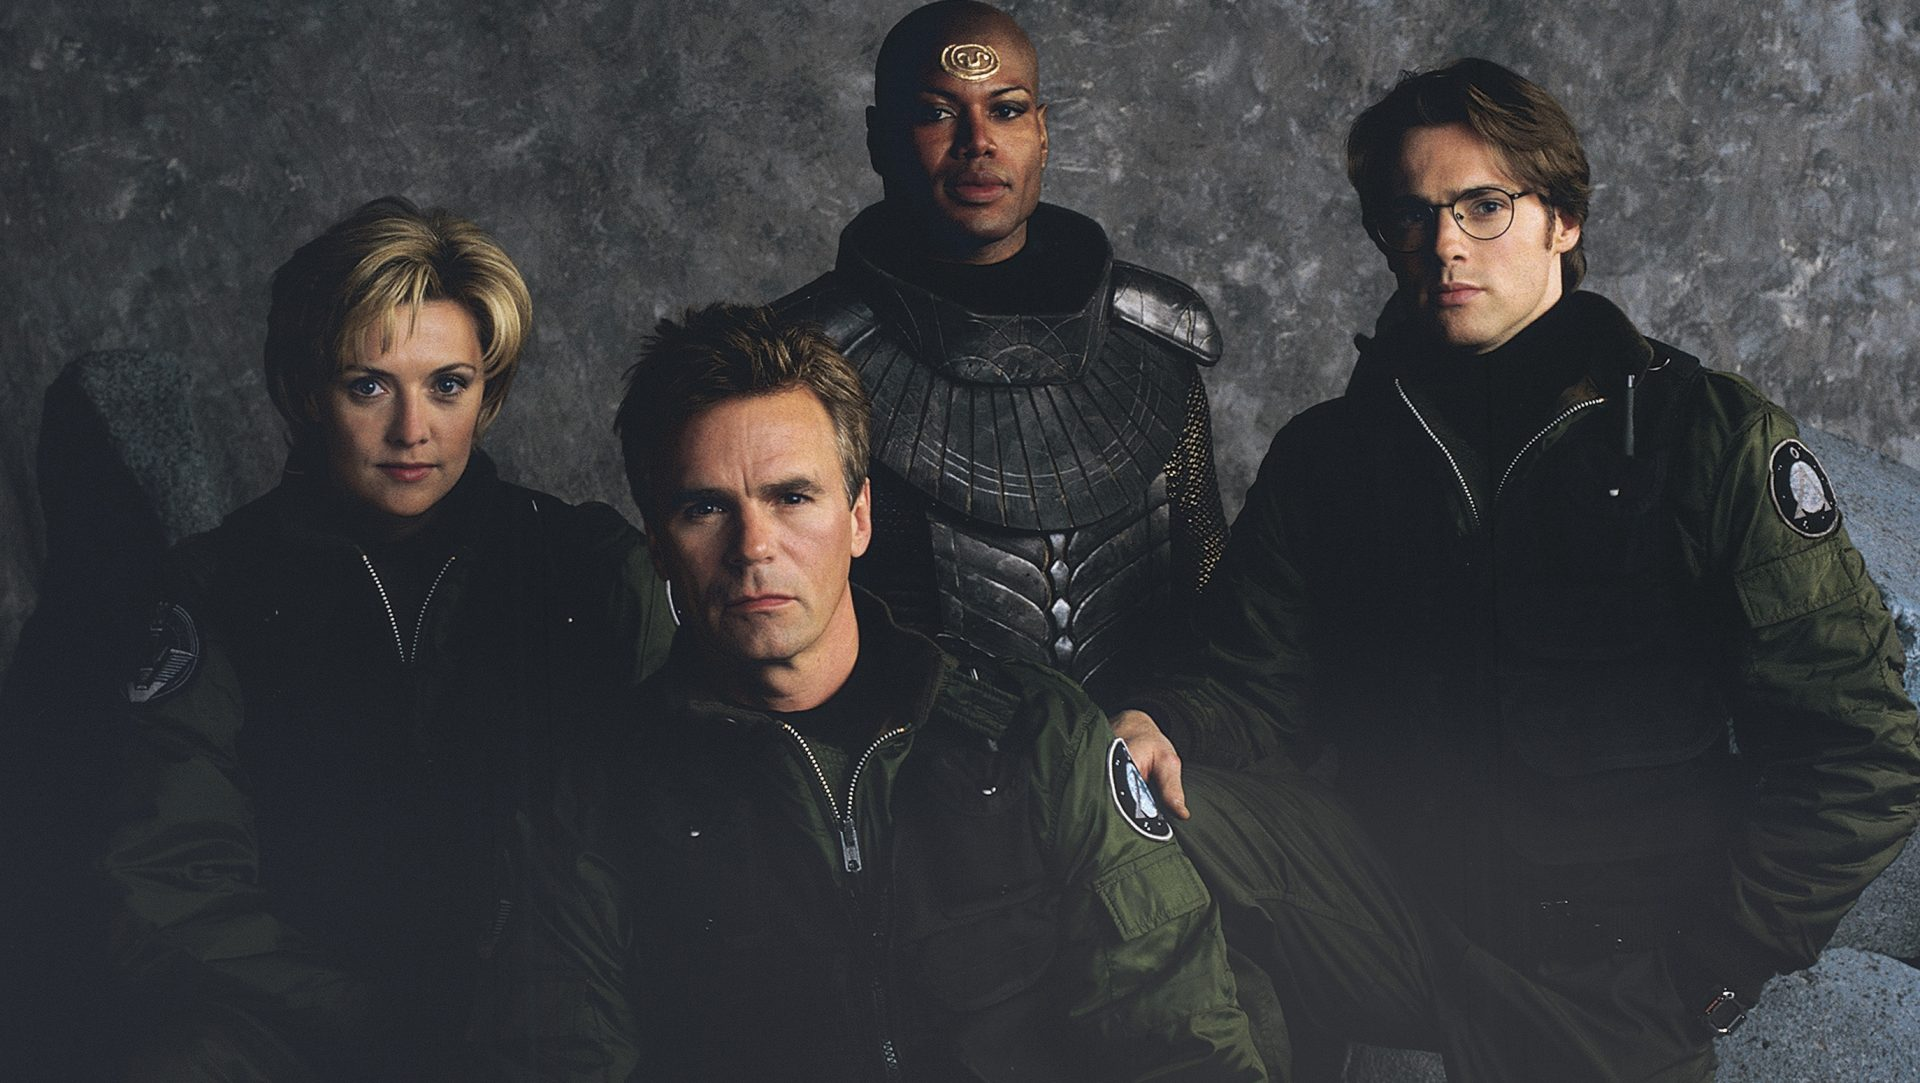 Stargate SG-1's 20th Anniversary – Celebrating One of Sci-Fi's Greatest Shows